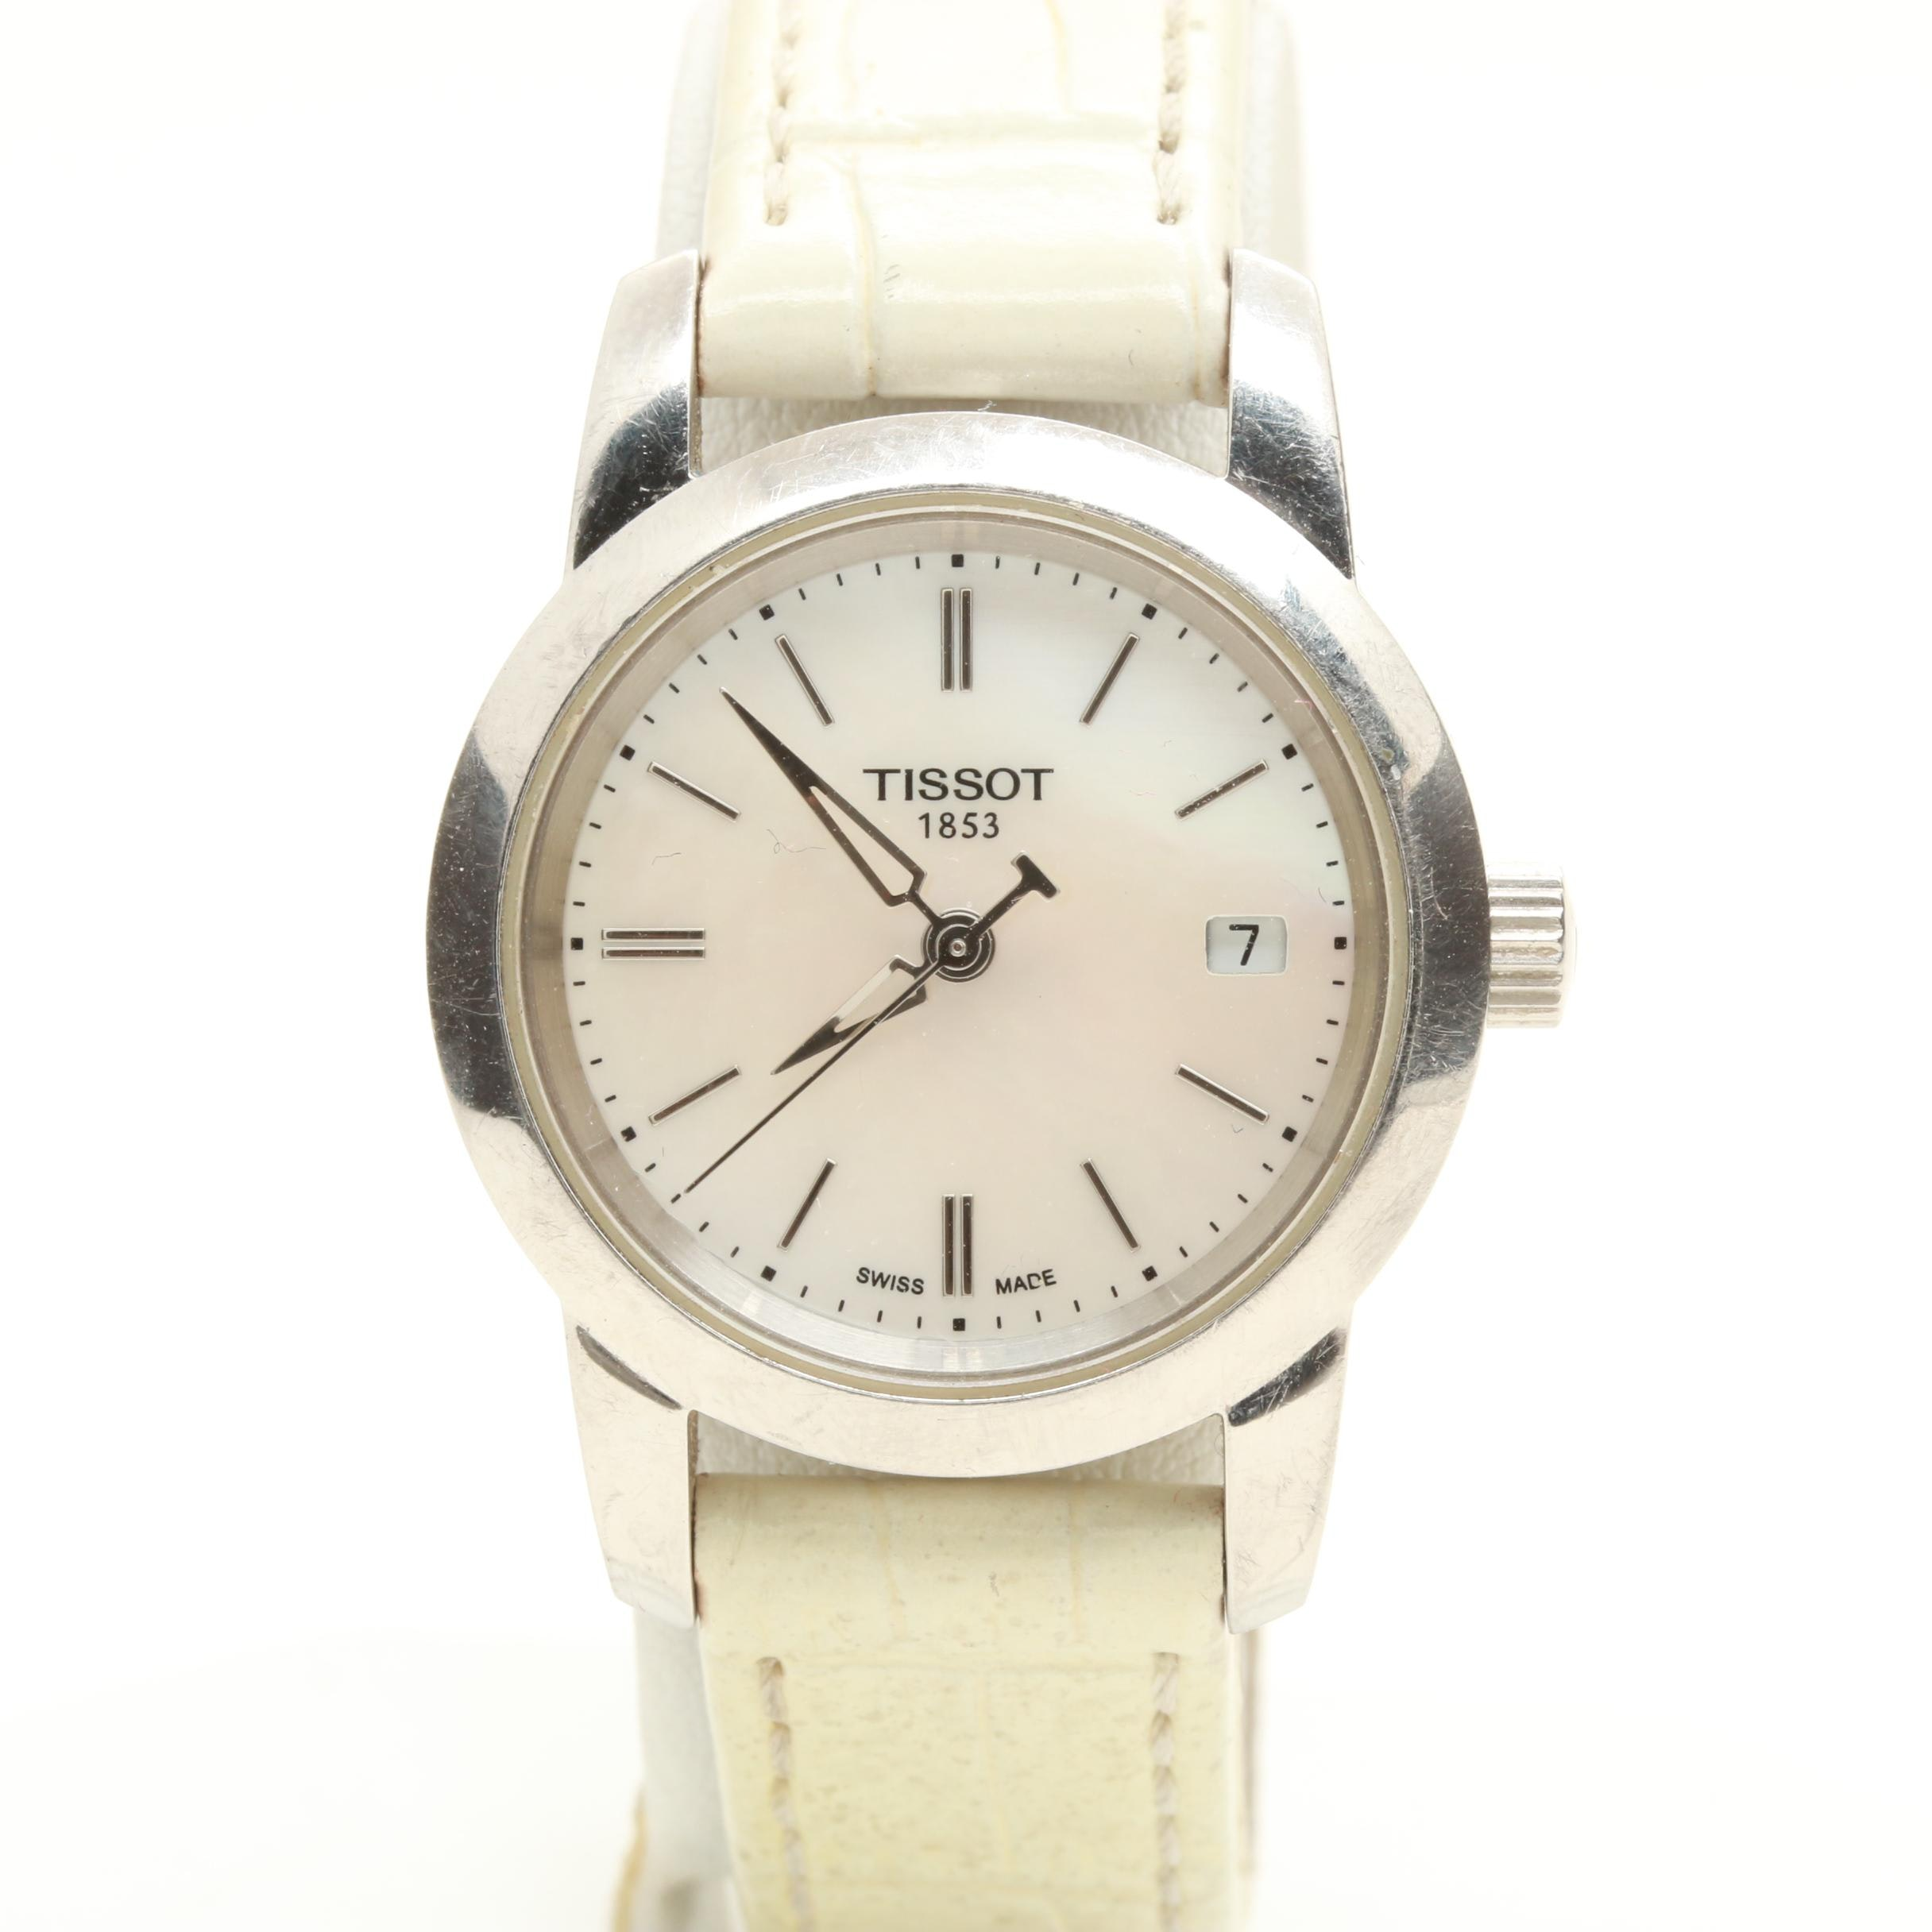 Tissot 1853 Swiss Made Stainless Steel Mother of Pearl Wristwatch